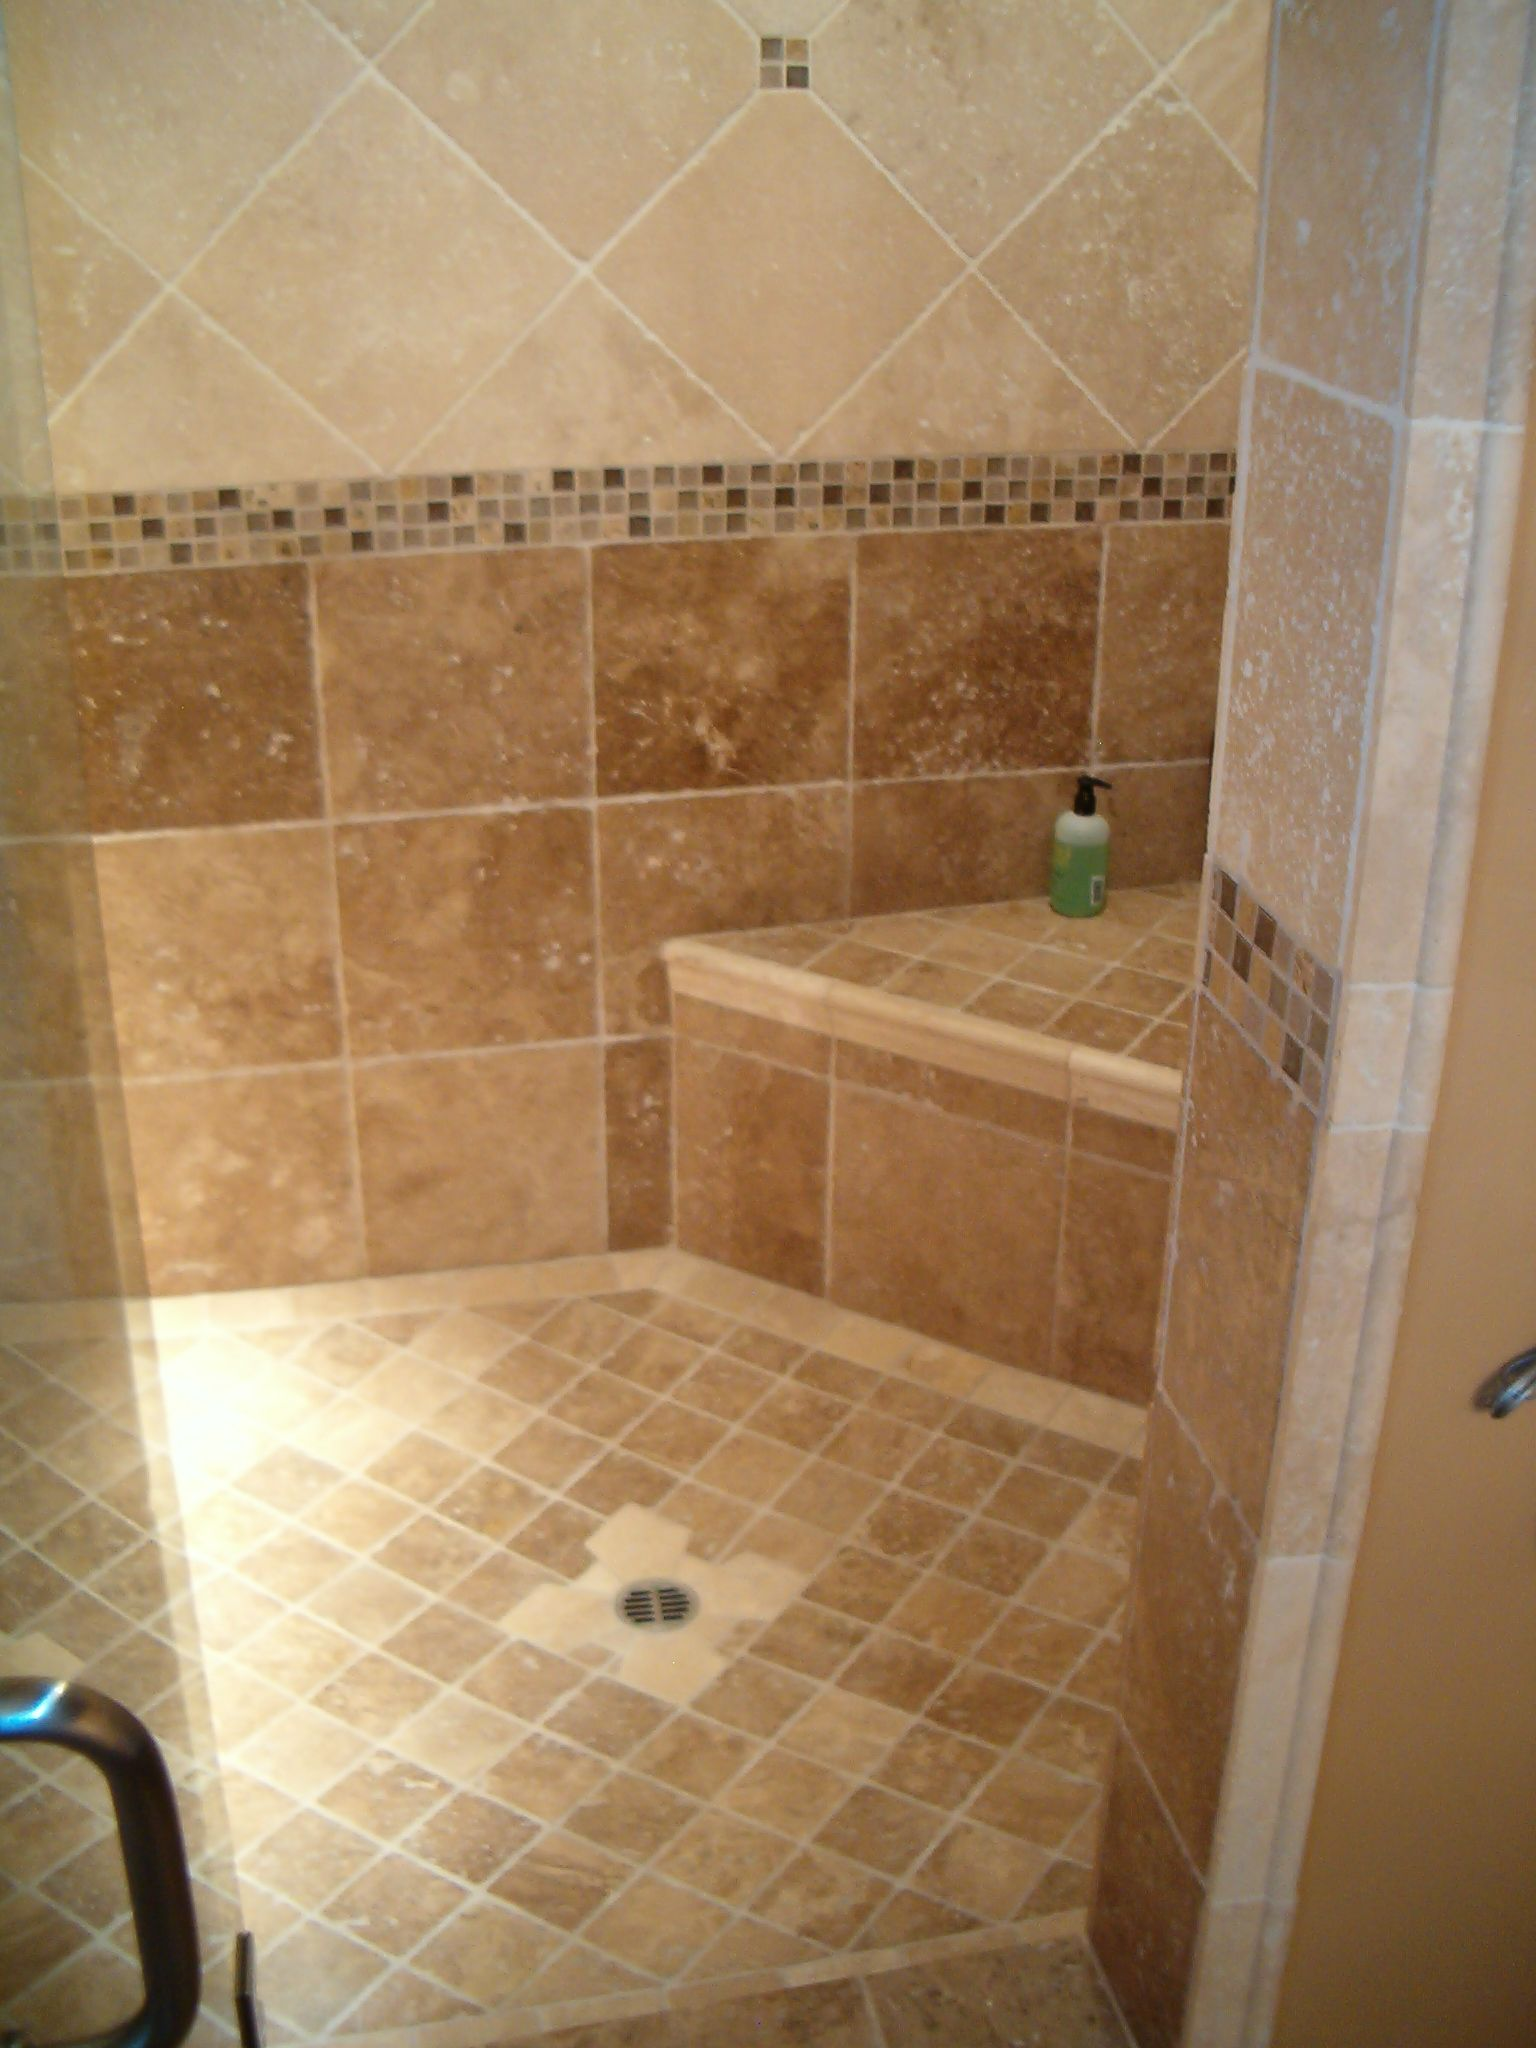 Finished Bathroom Ideas Of Bathroom Tile Ideas Photos The Finished Shower Is Sealed